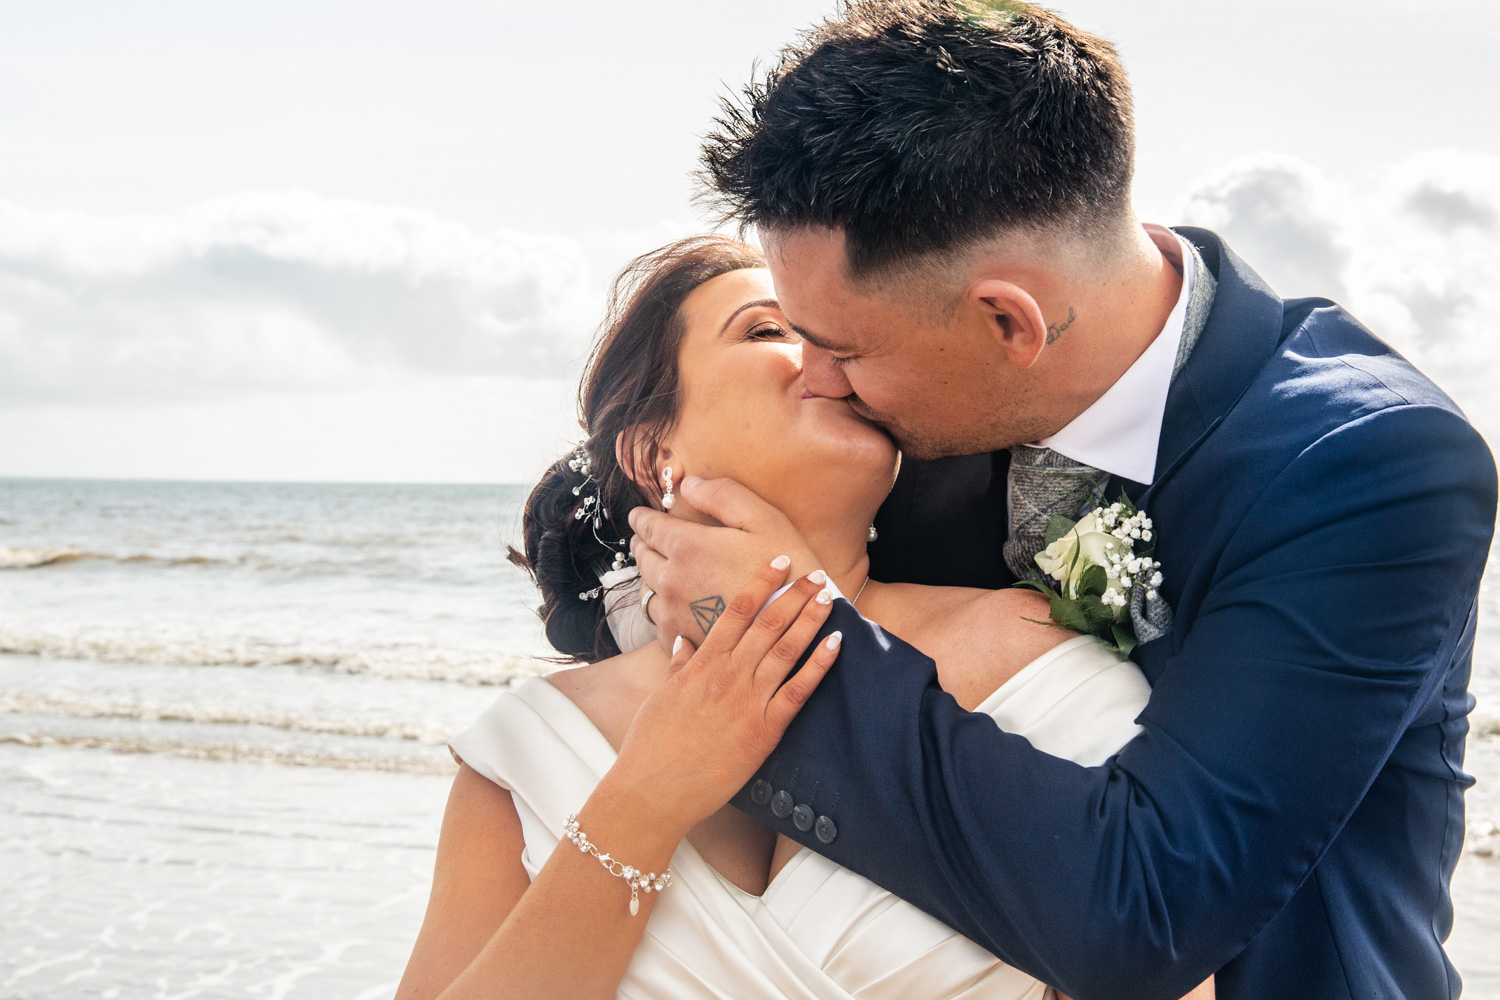 best wedding photography kiss of bride and groom in swansea and gower beach